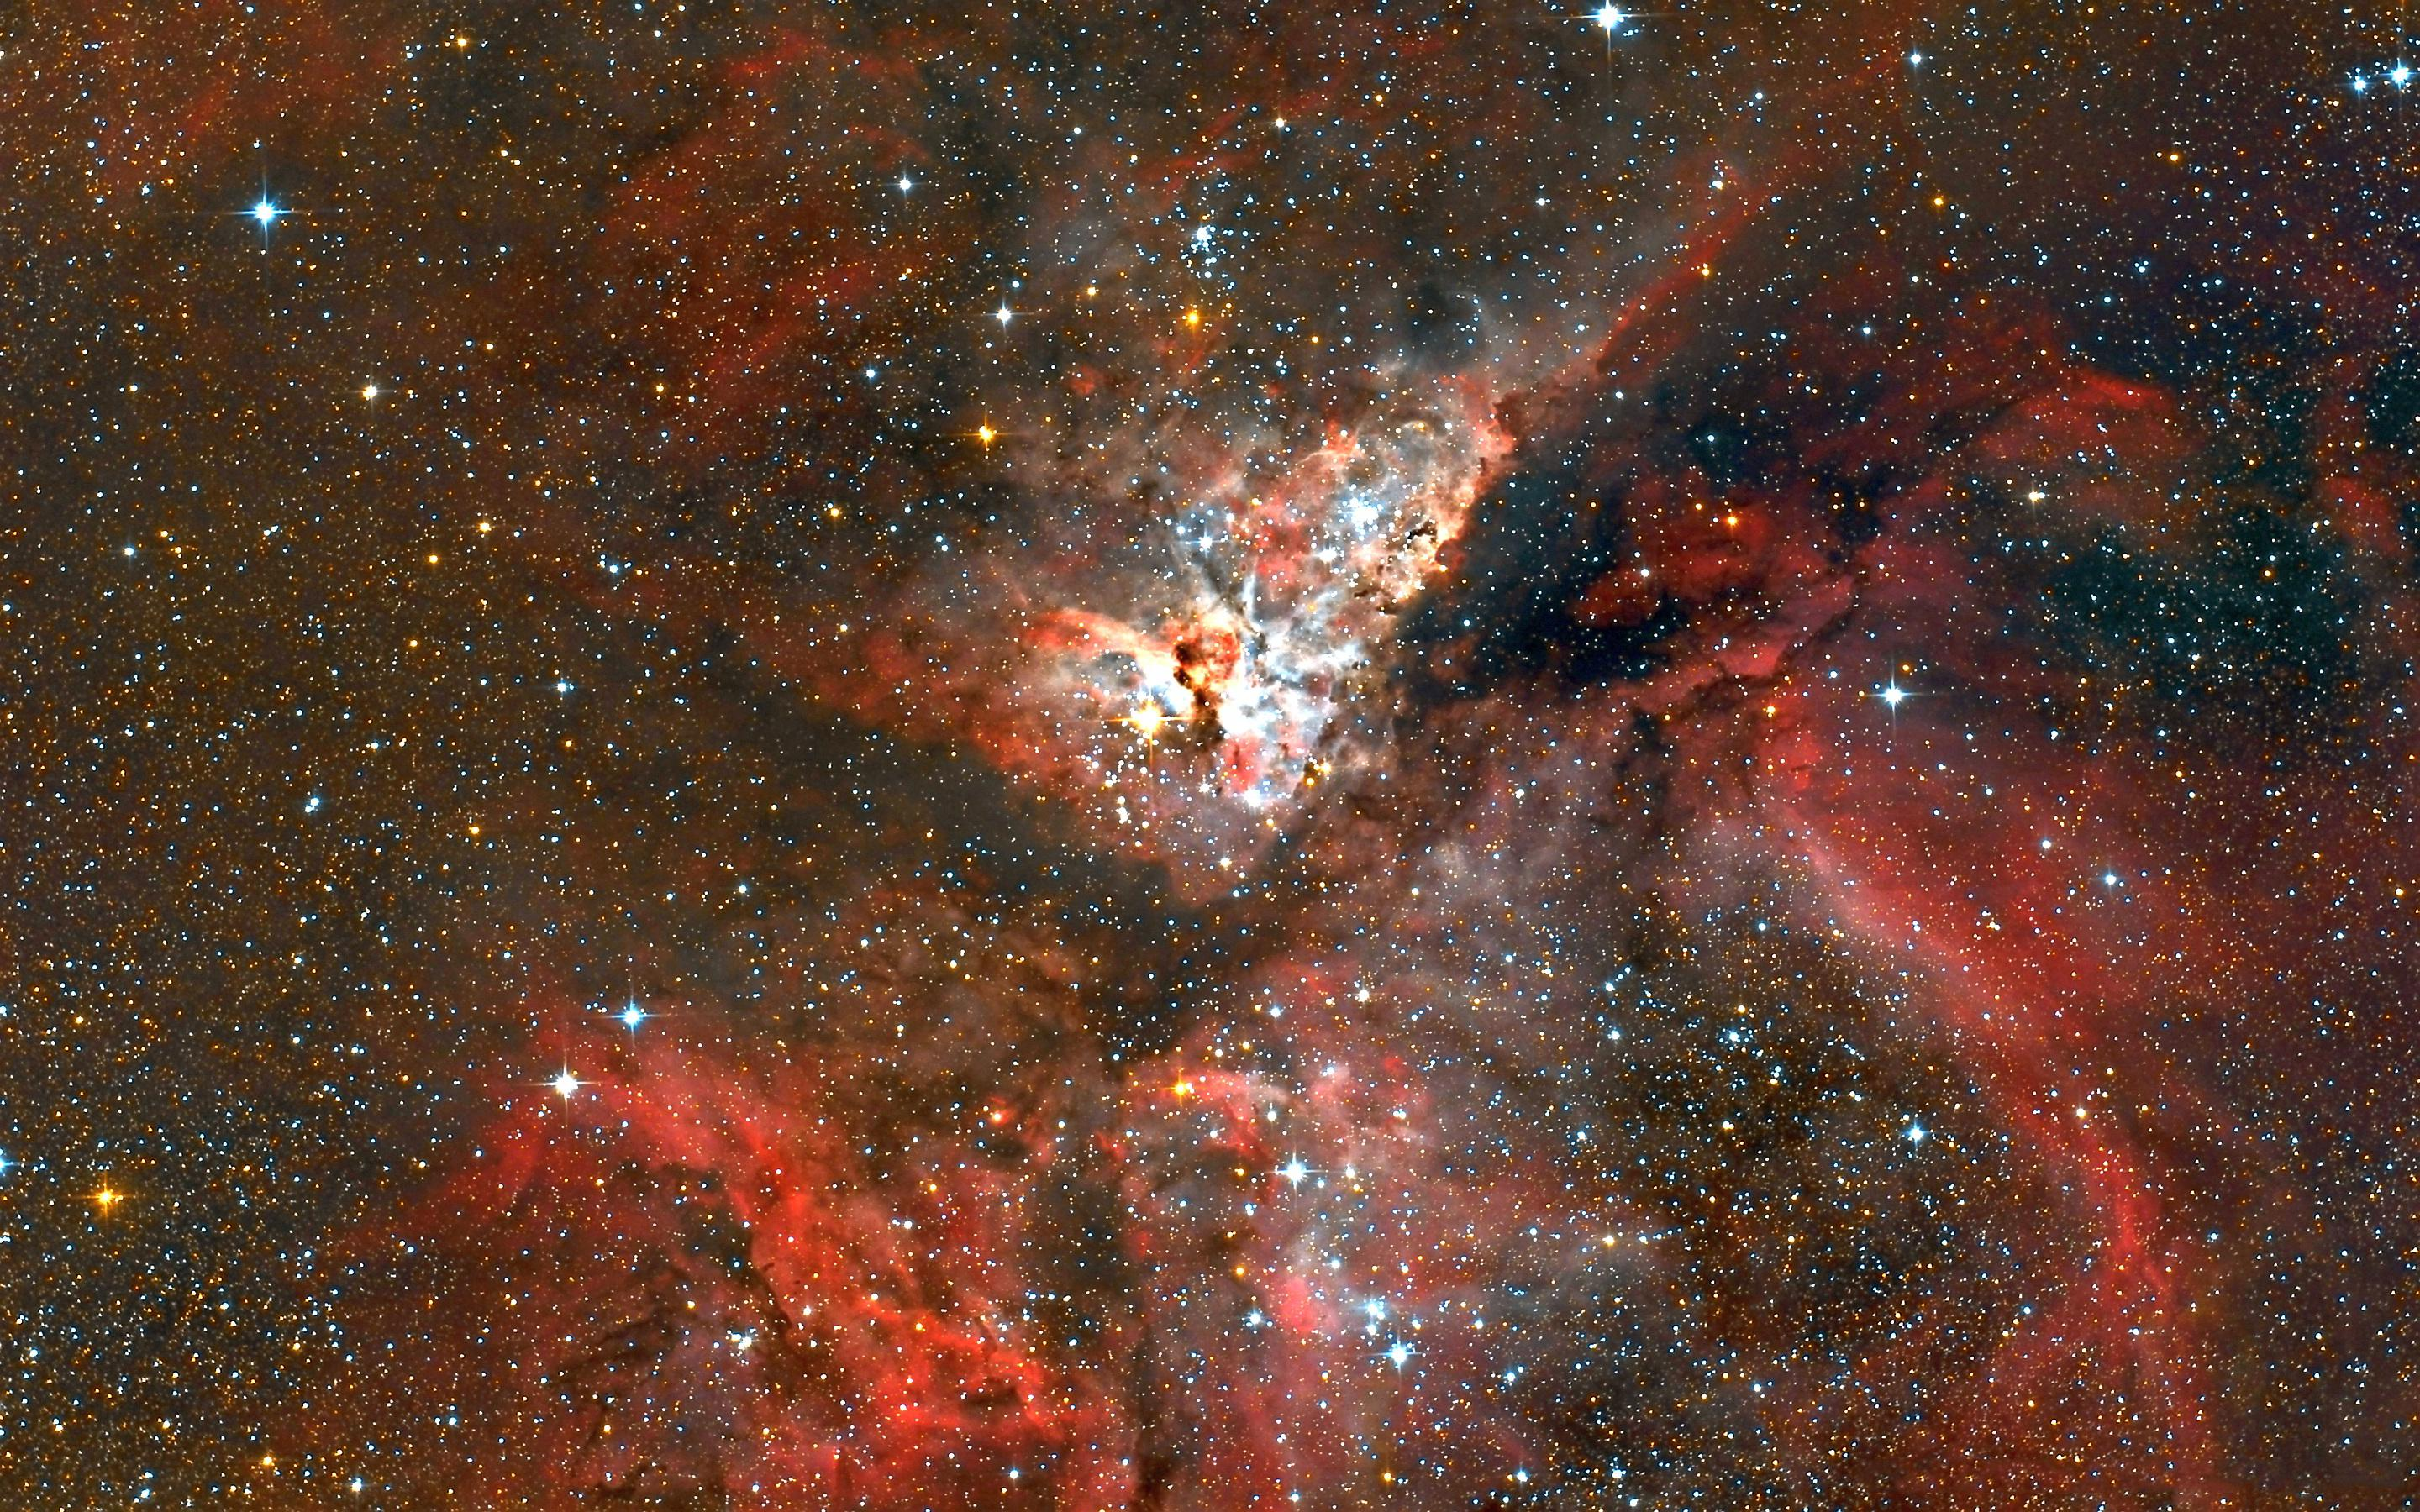 Cute Pink Wallpapers Download Hd Carina Nebula Stars Wallpaper Download Free 143913